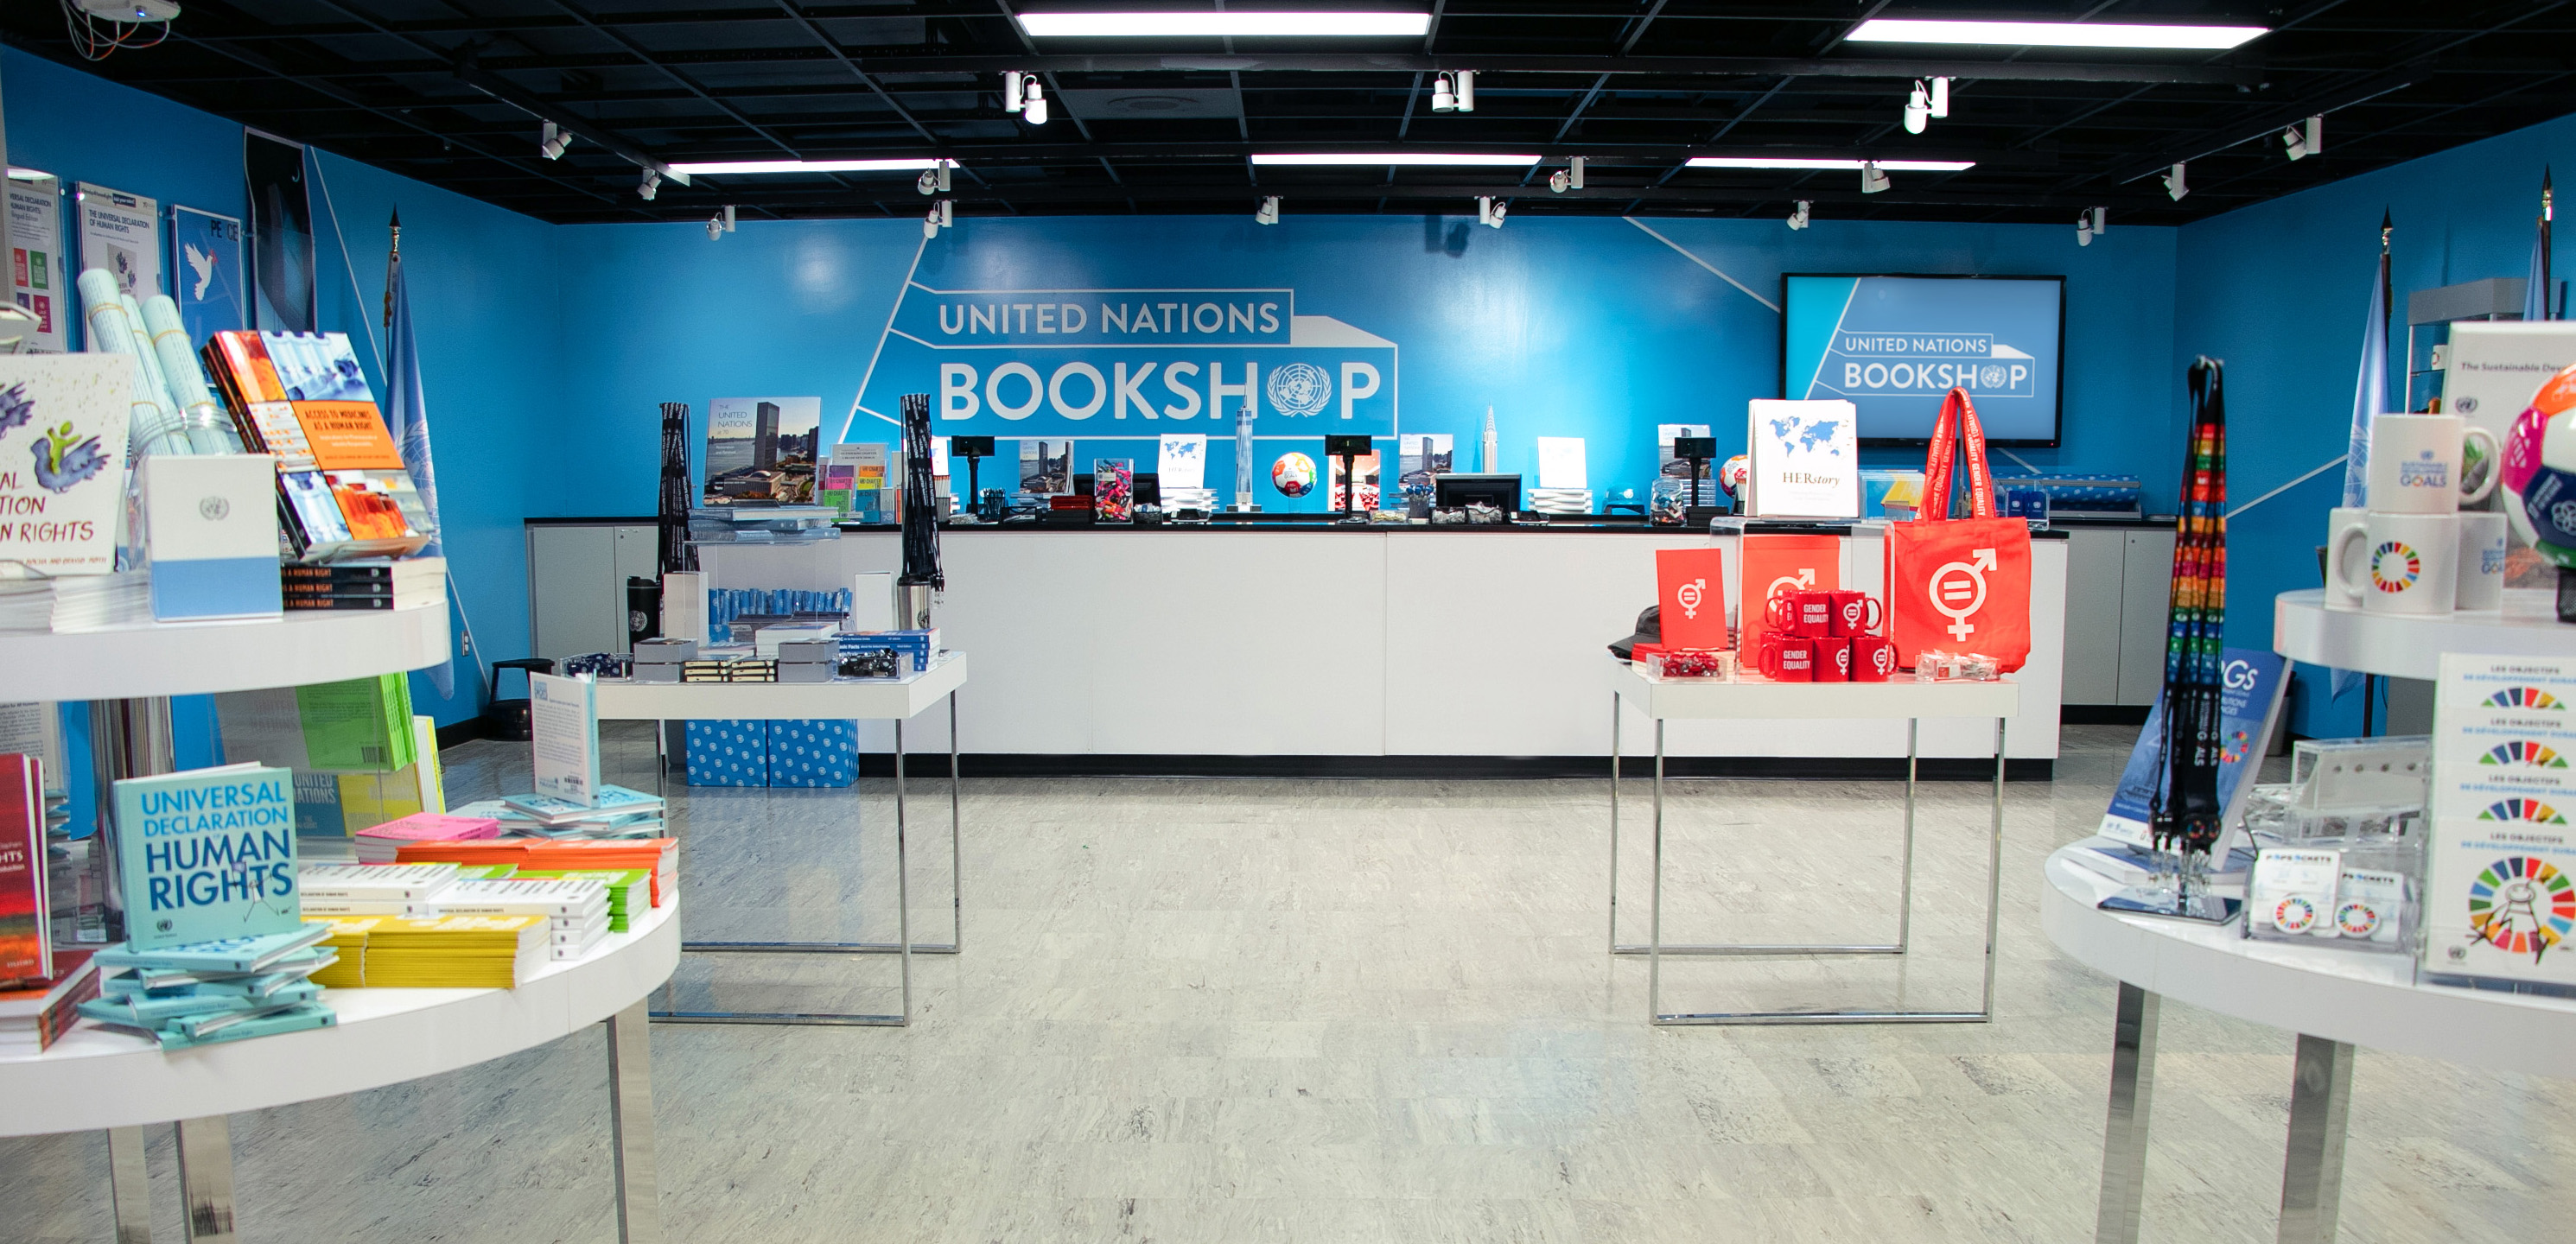 United Nations Bookshop Store Picture